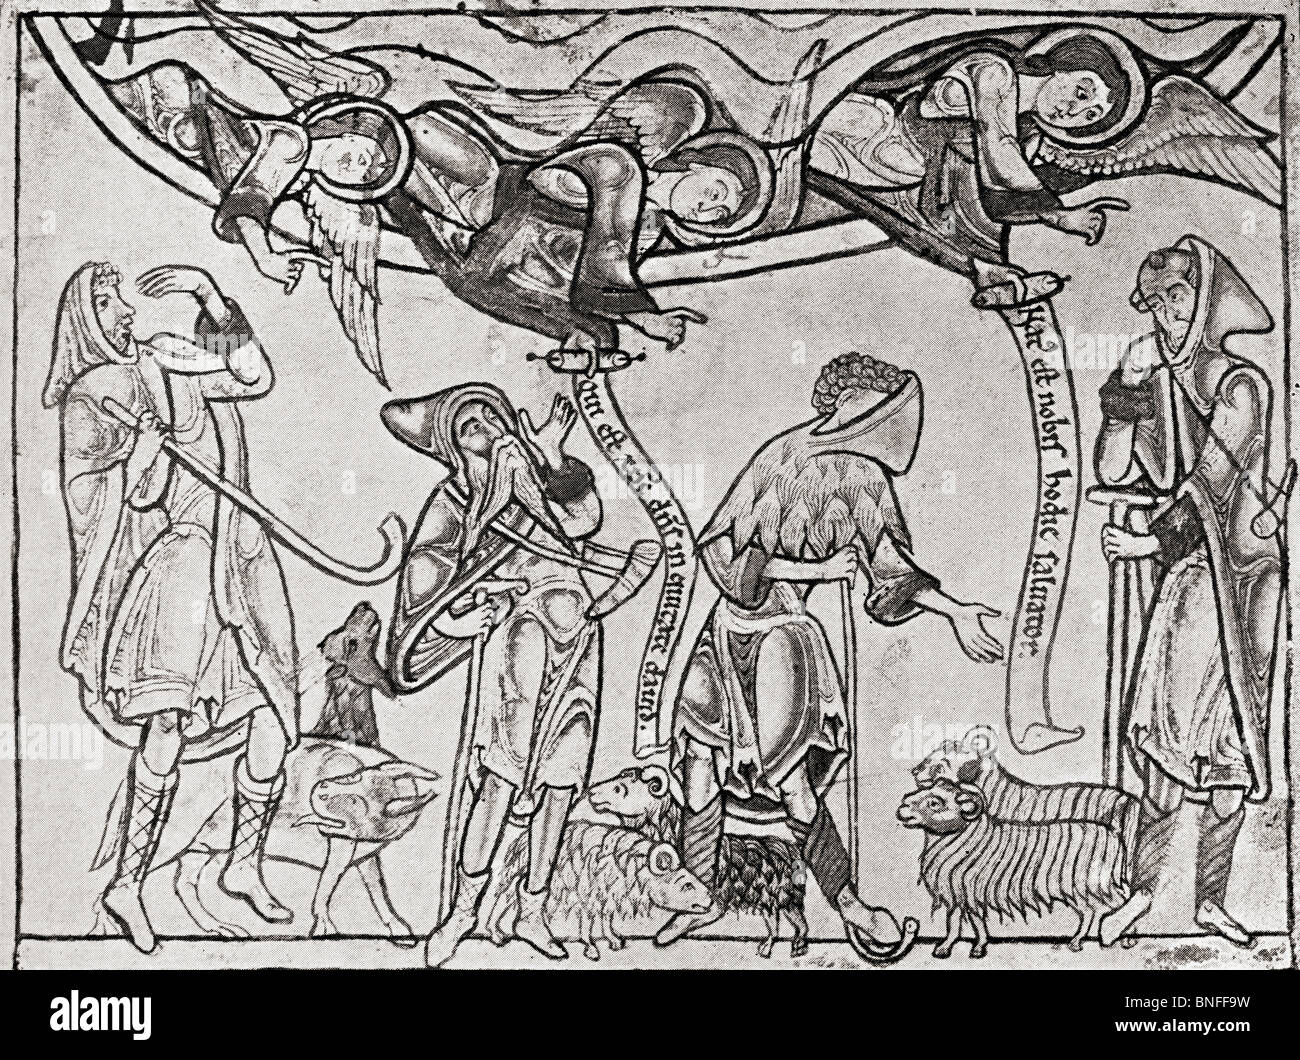 Shepherds in the middle ages. Illustration from the book The Connoisseur Illustrated published 1904. - Stock Image